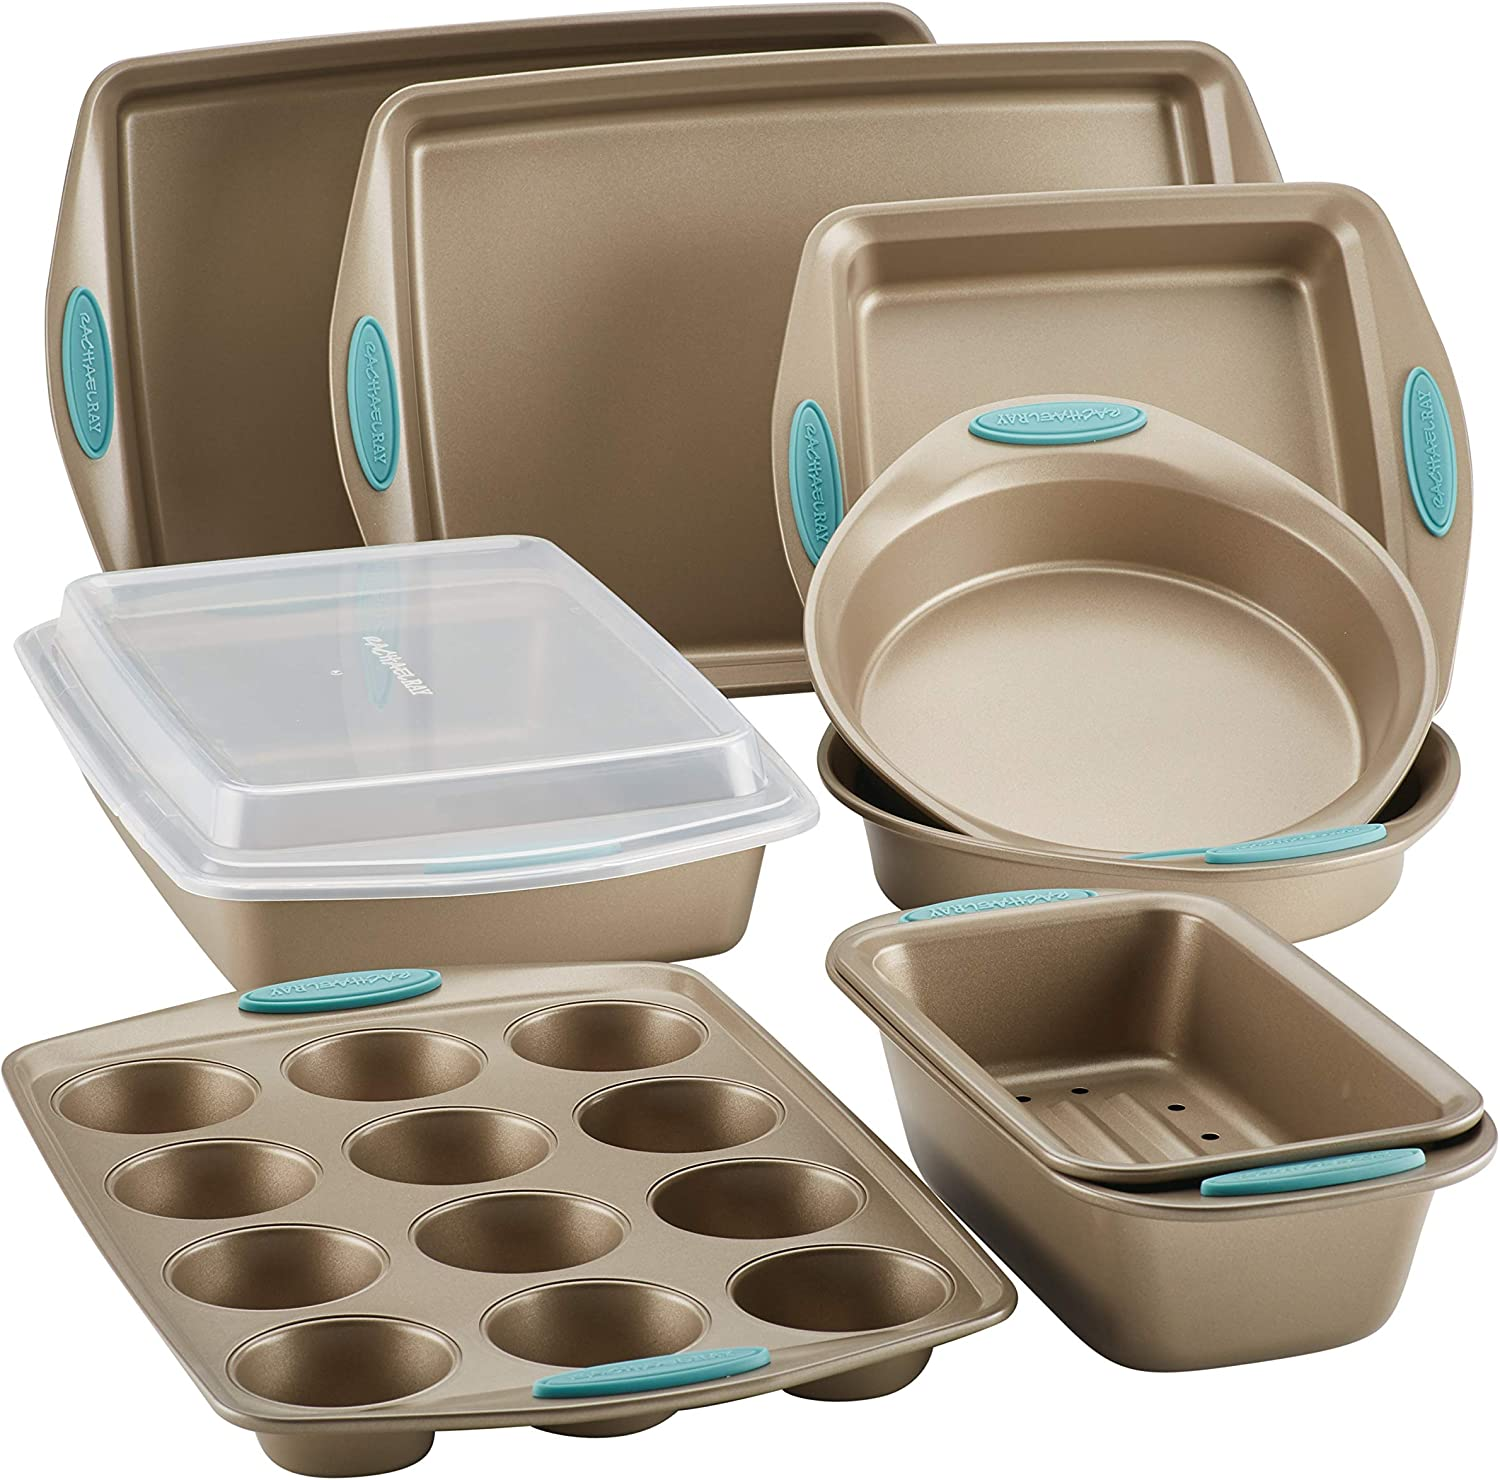 Rachael Ray Cucina Nonstick Bakeware Set with Grips, 10 Piece